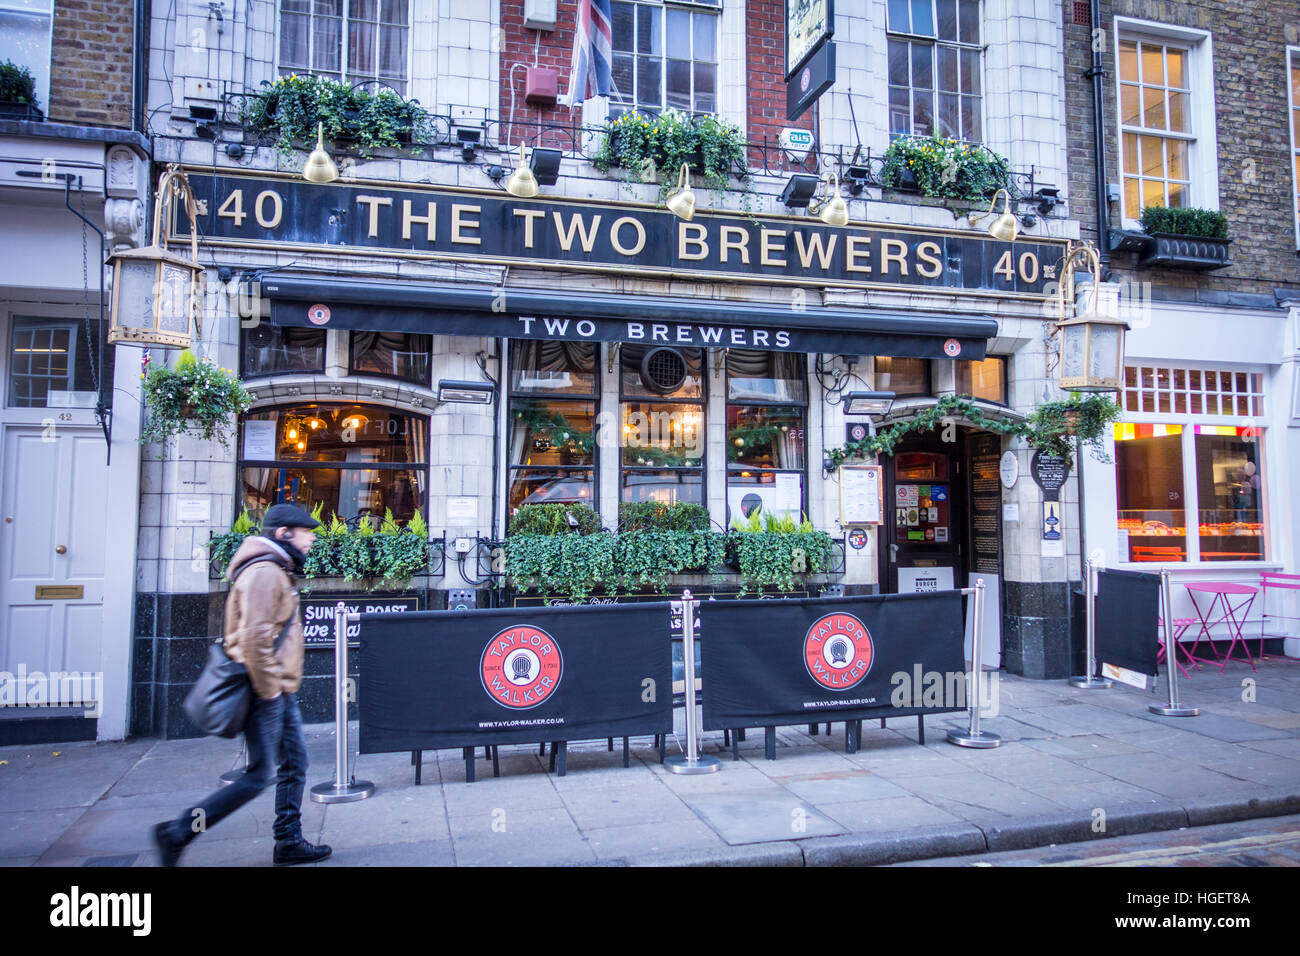 Les deux brasseurs, pub traditionnel sur Monmouth Street, Seven Dials / Covent Garden, London, UK Photo Stock